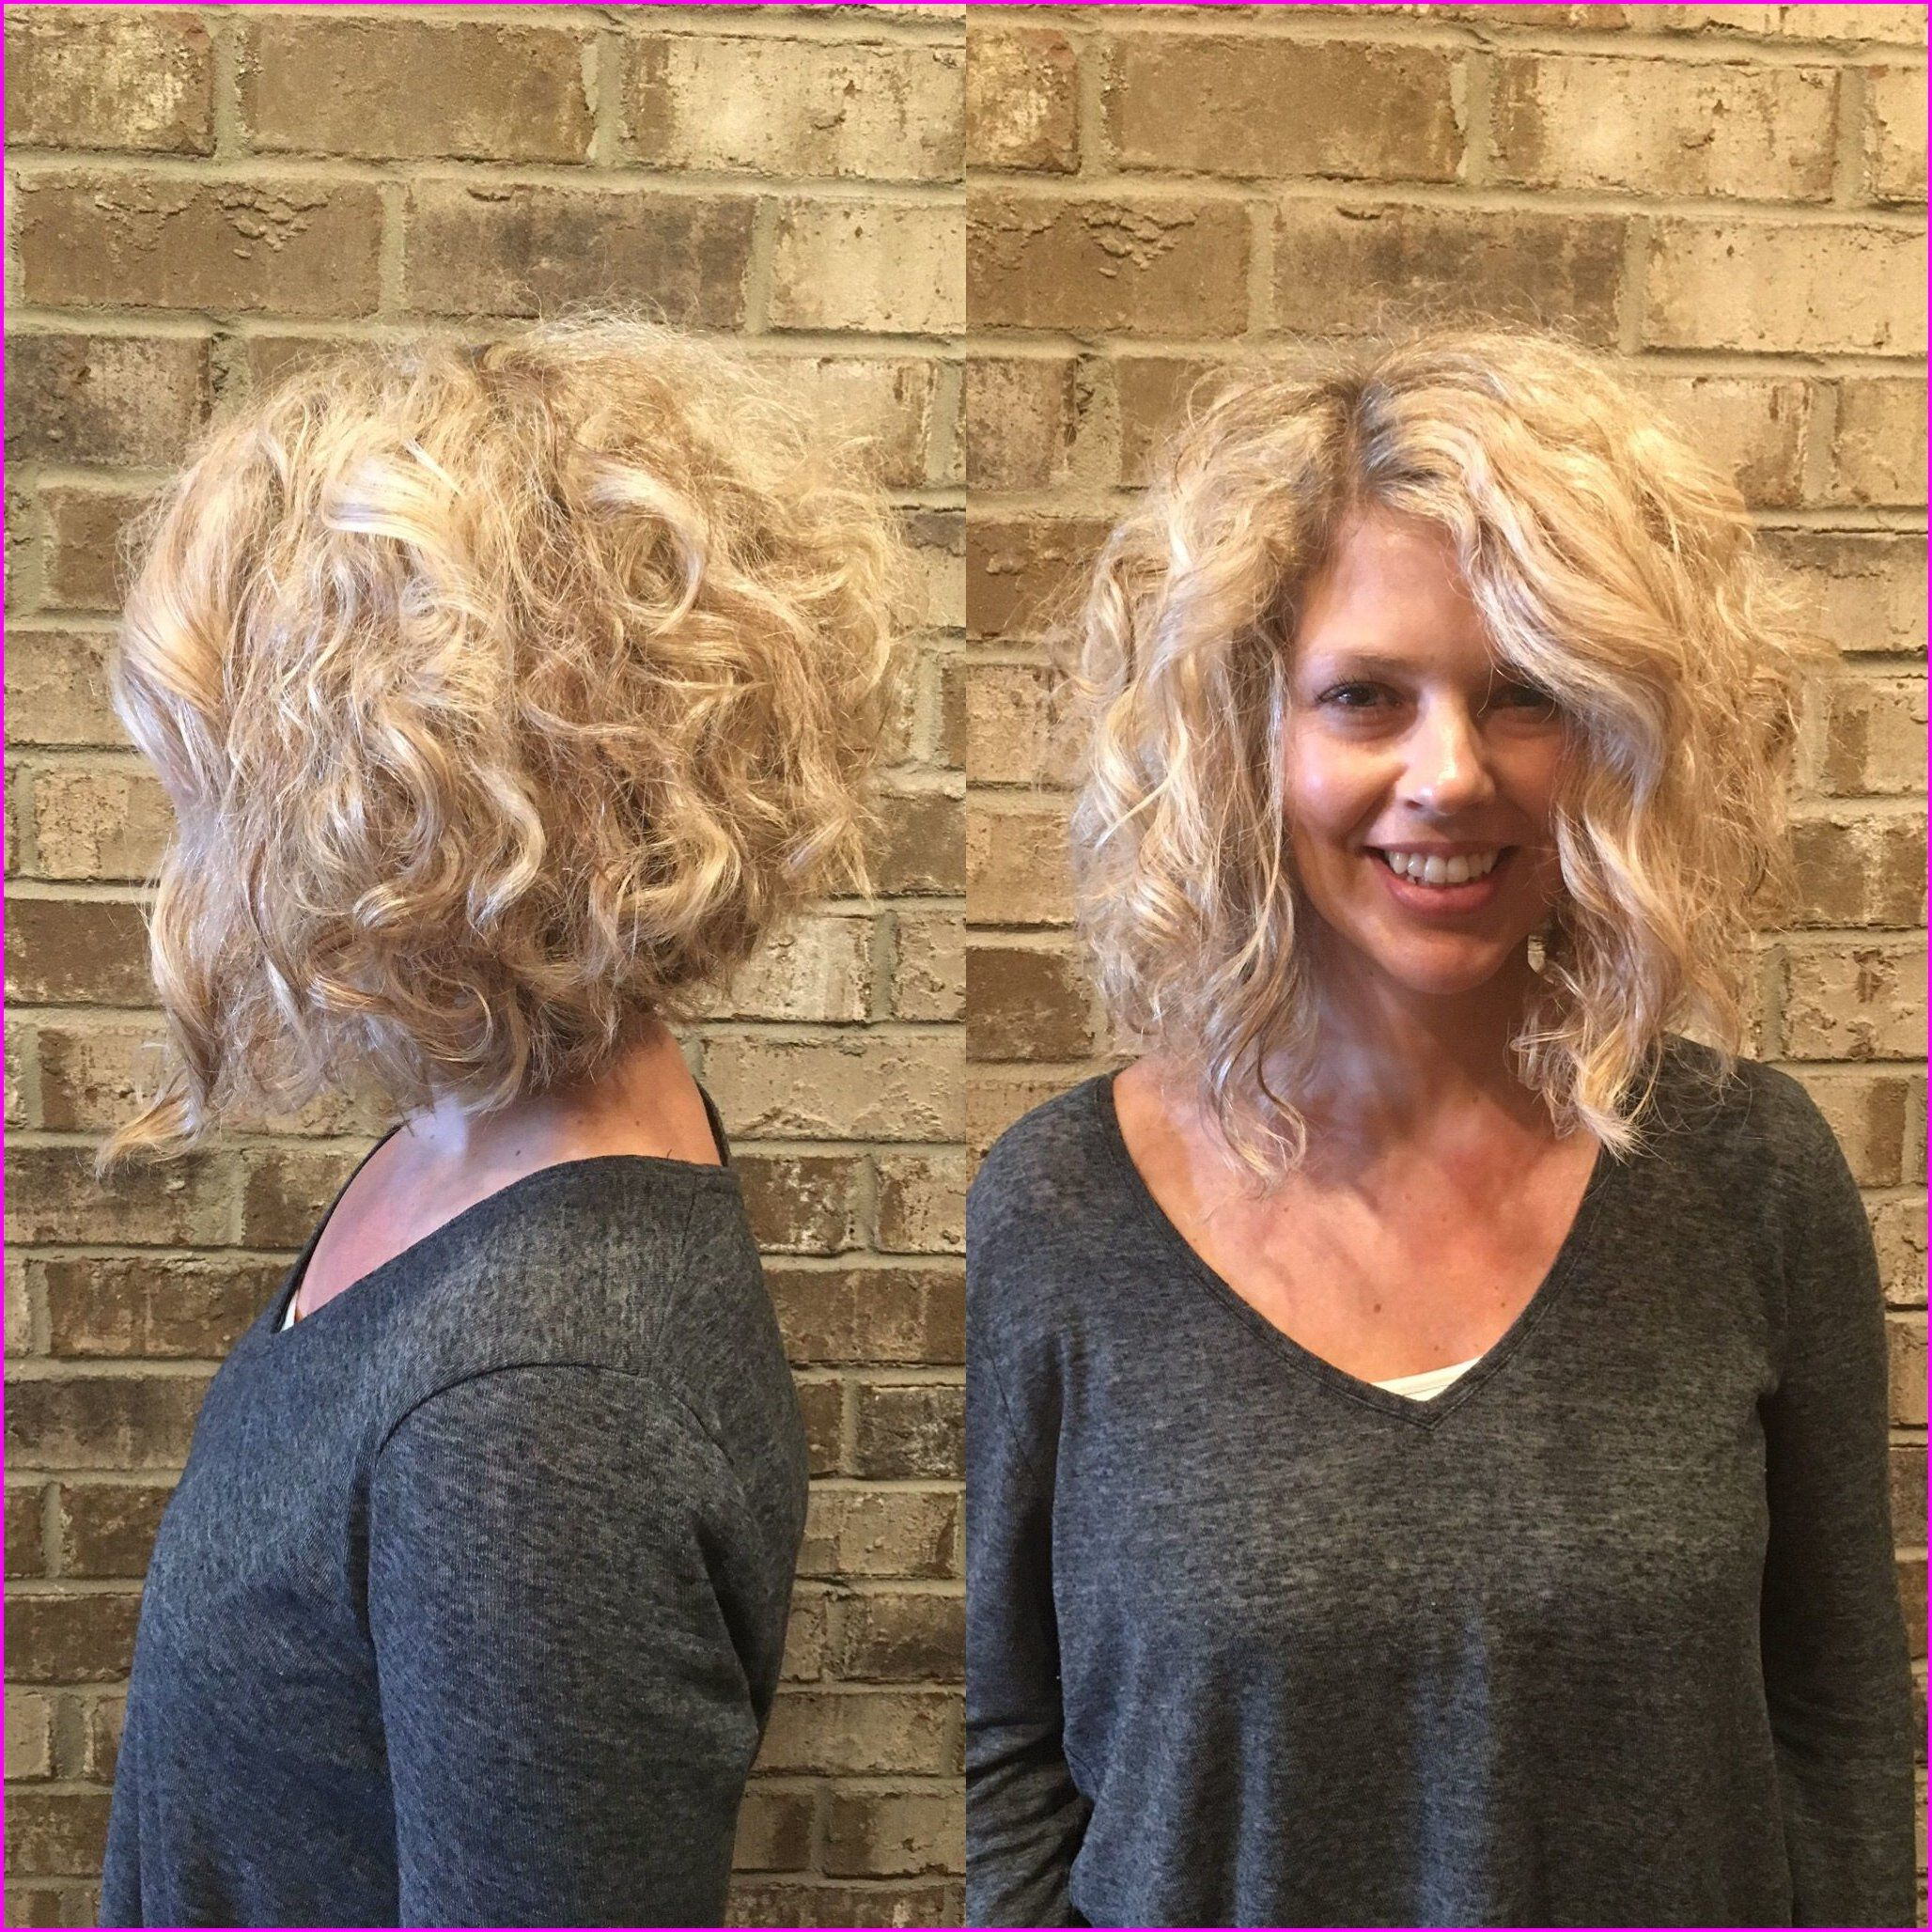 Curly Bob Haircuts Best Short Haircuts For Curly Hair Round Face 2019 Bob Haircut Curly Hair Styles Haircuts For Curly Hair